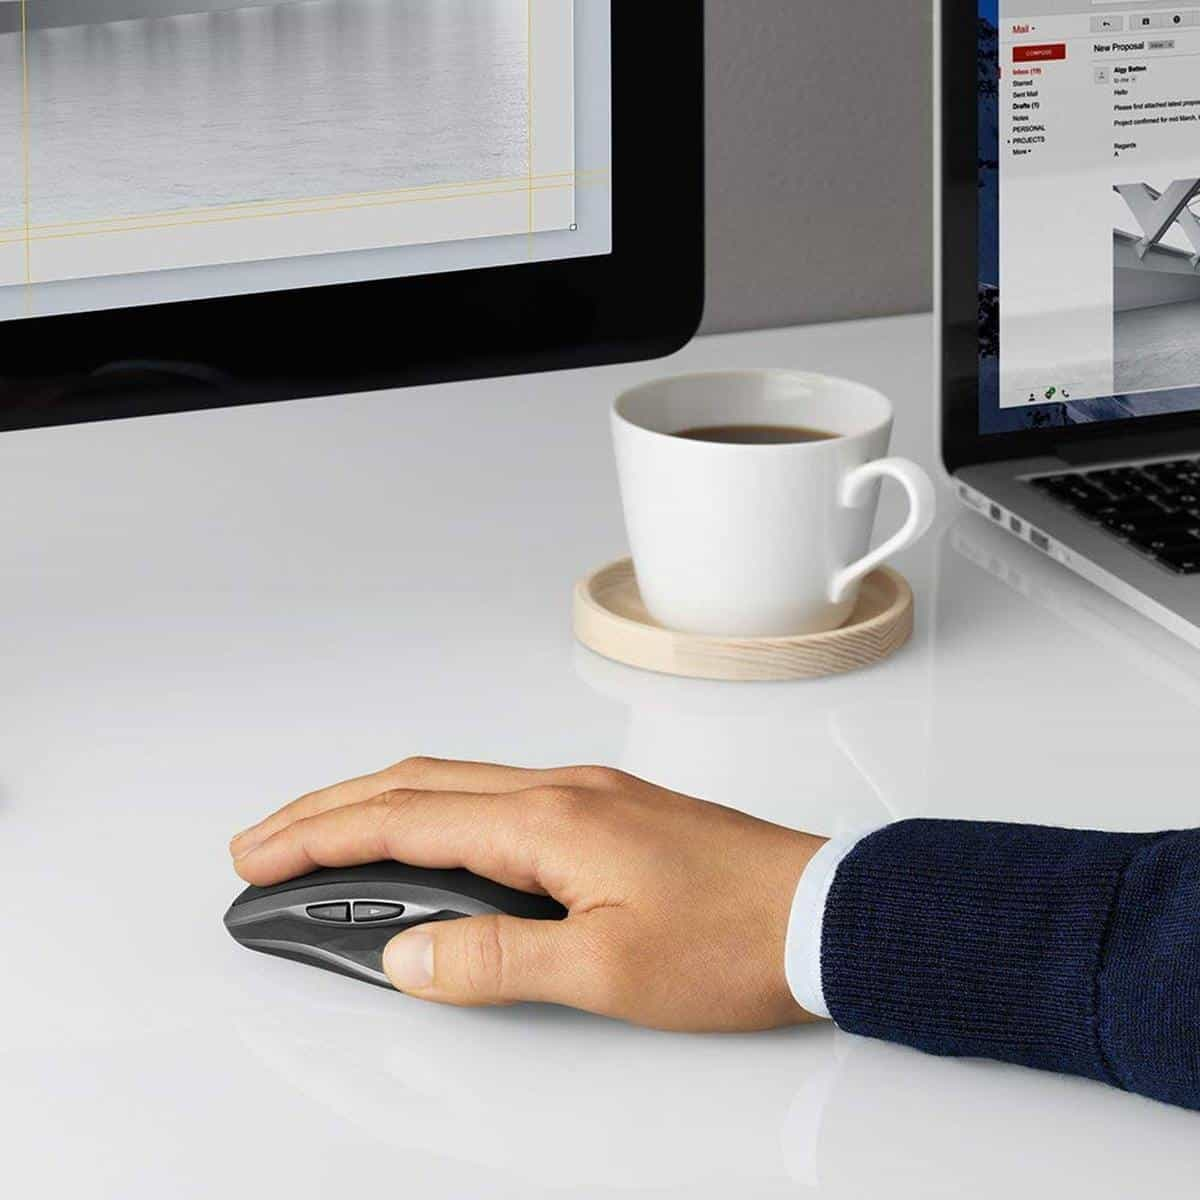 Logitech MX Anywhere 2S Wireless Mouse   Best Macbook Accessories for 2019